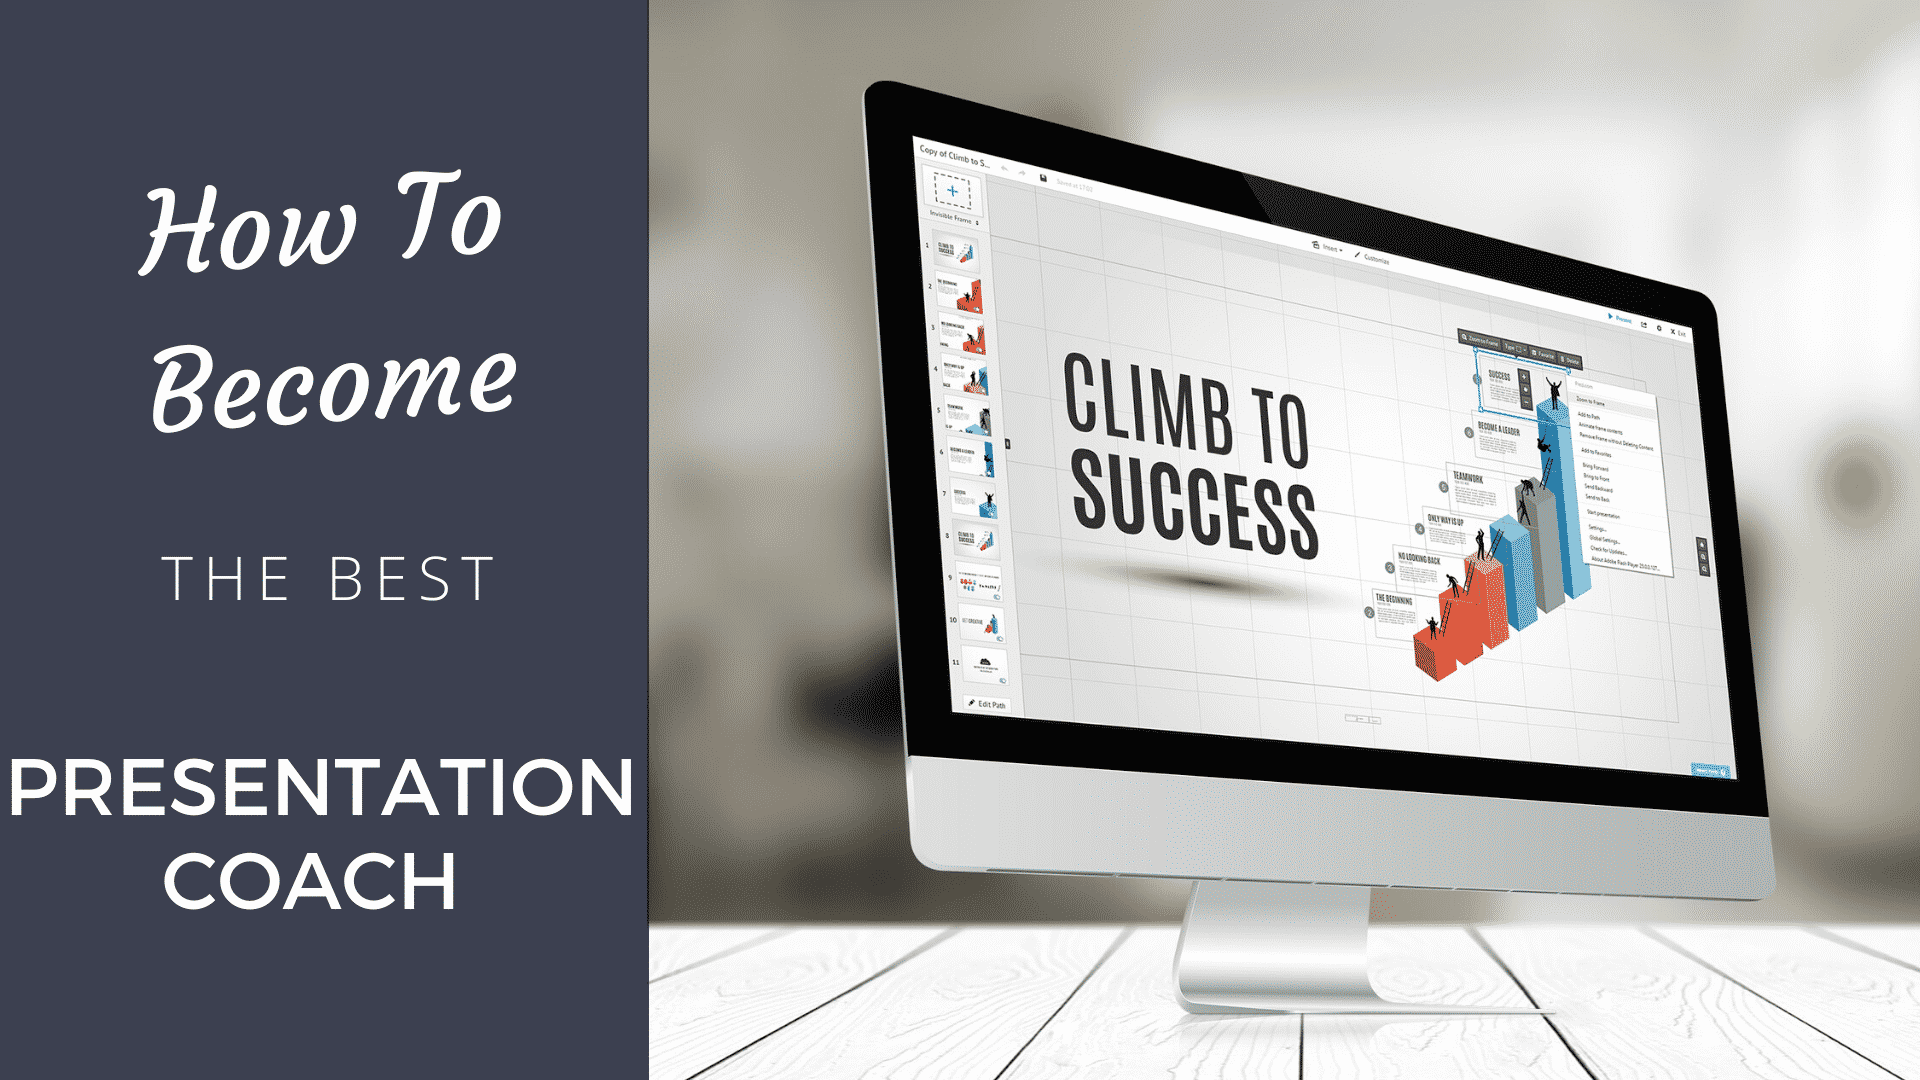 How to Become the Best Presentation Coach [2020] presentation coach